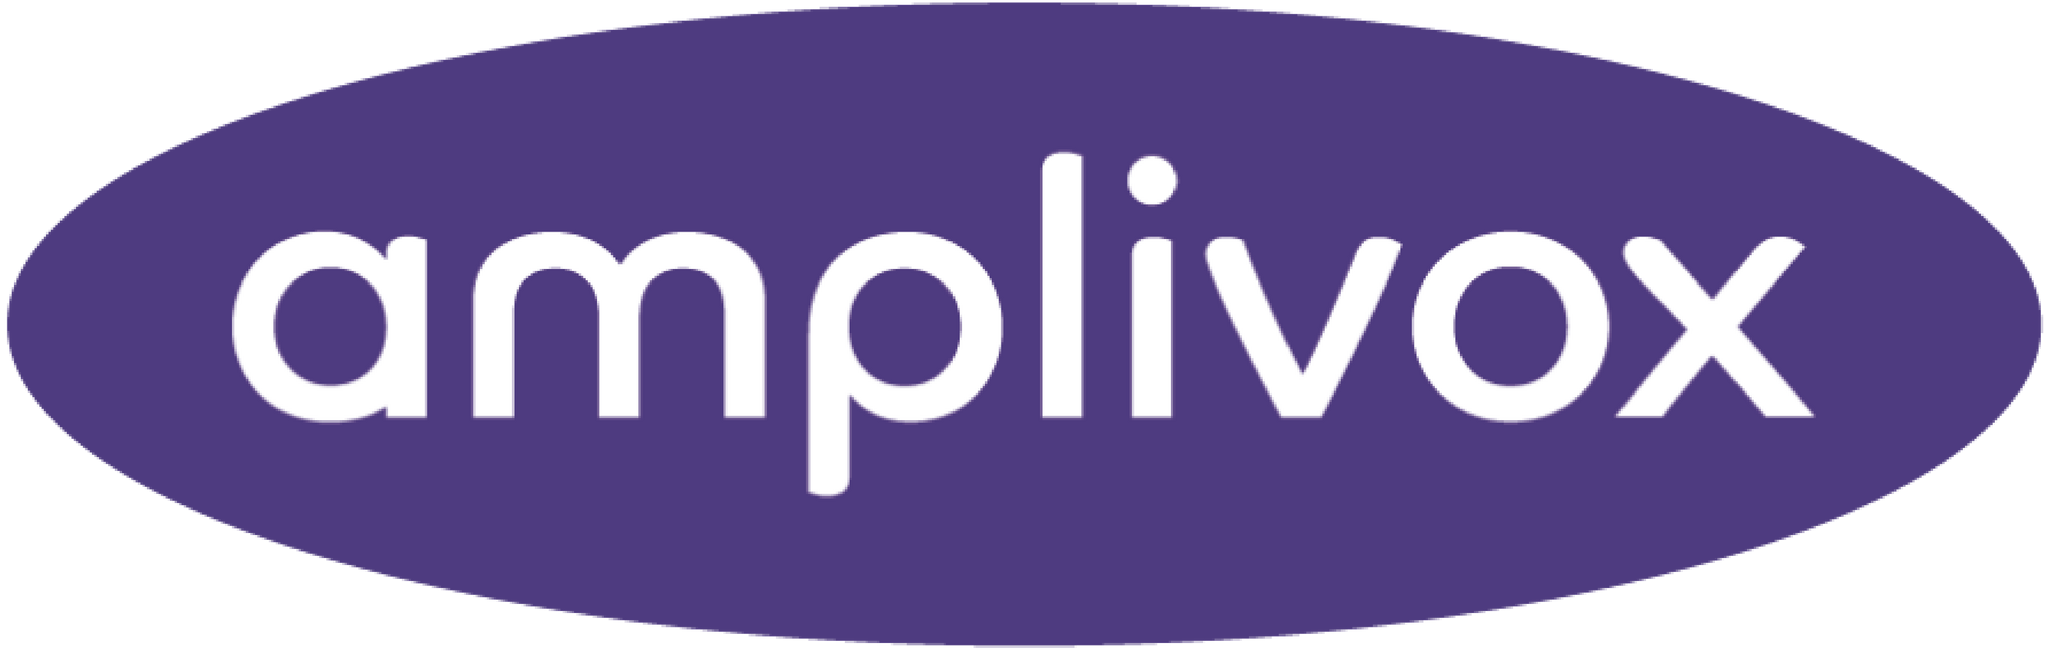 Amplivox Limited